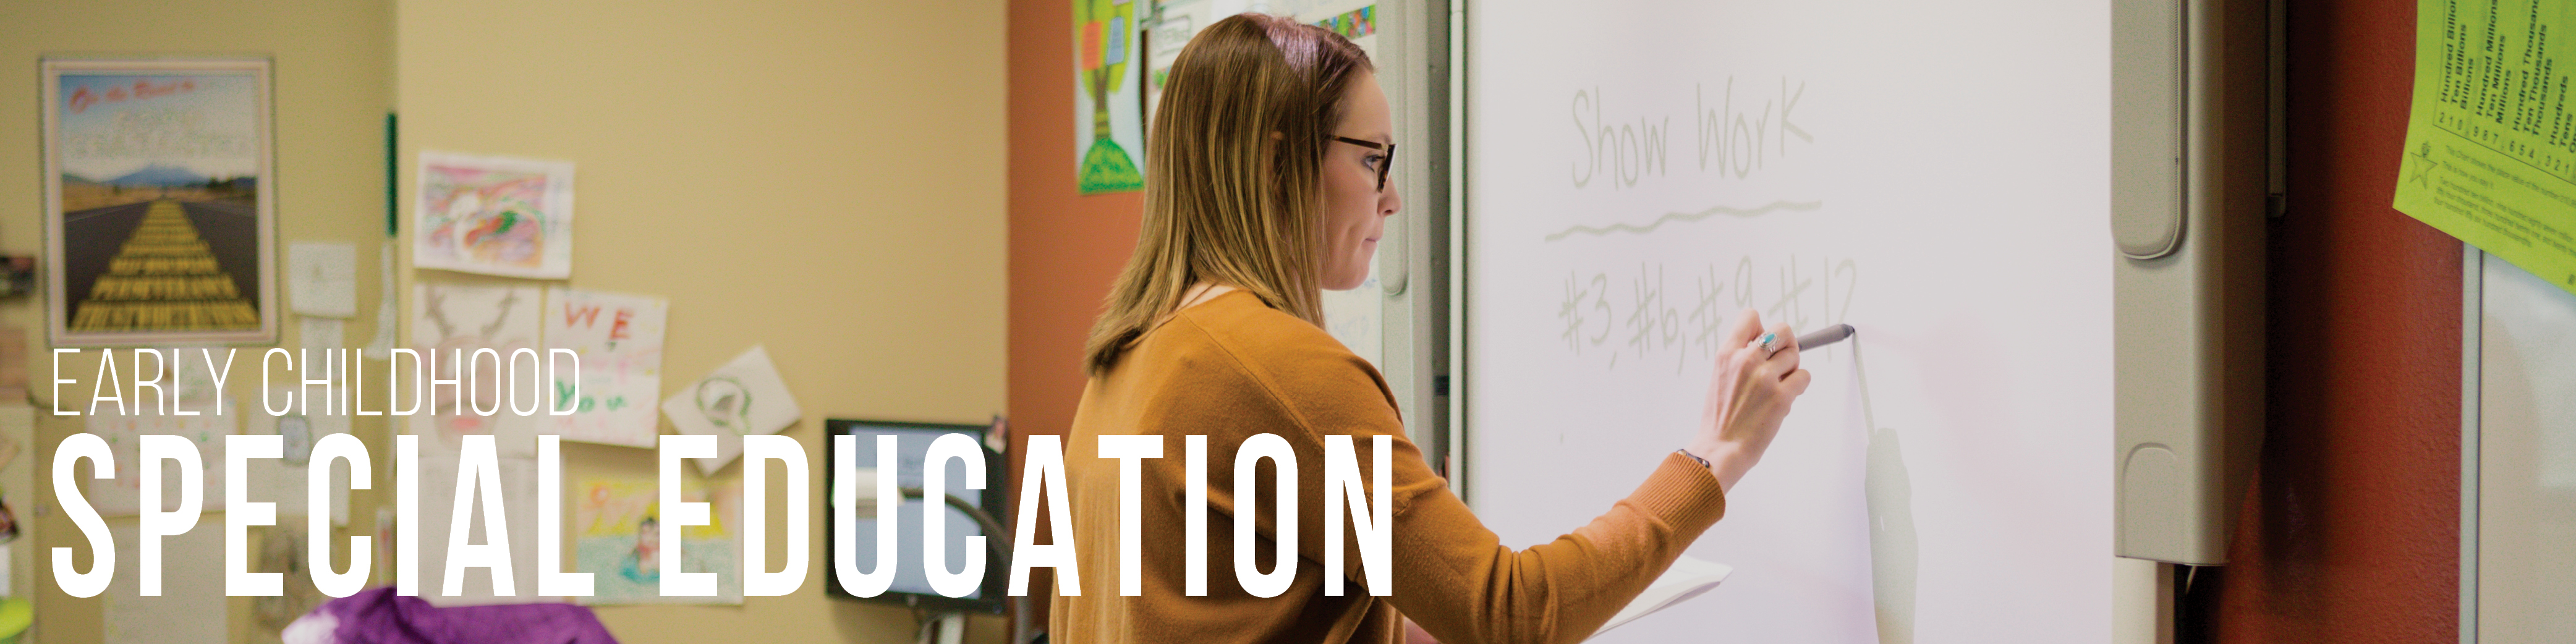 Early Childhood Special Education at BHSU